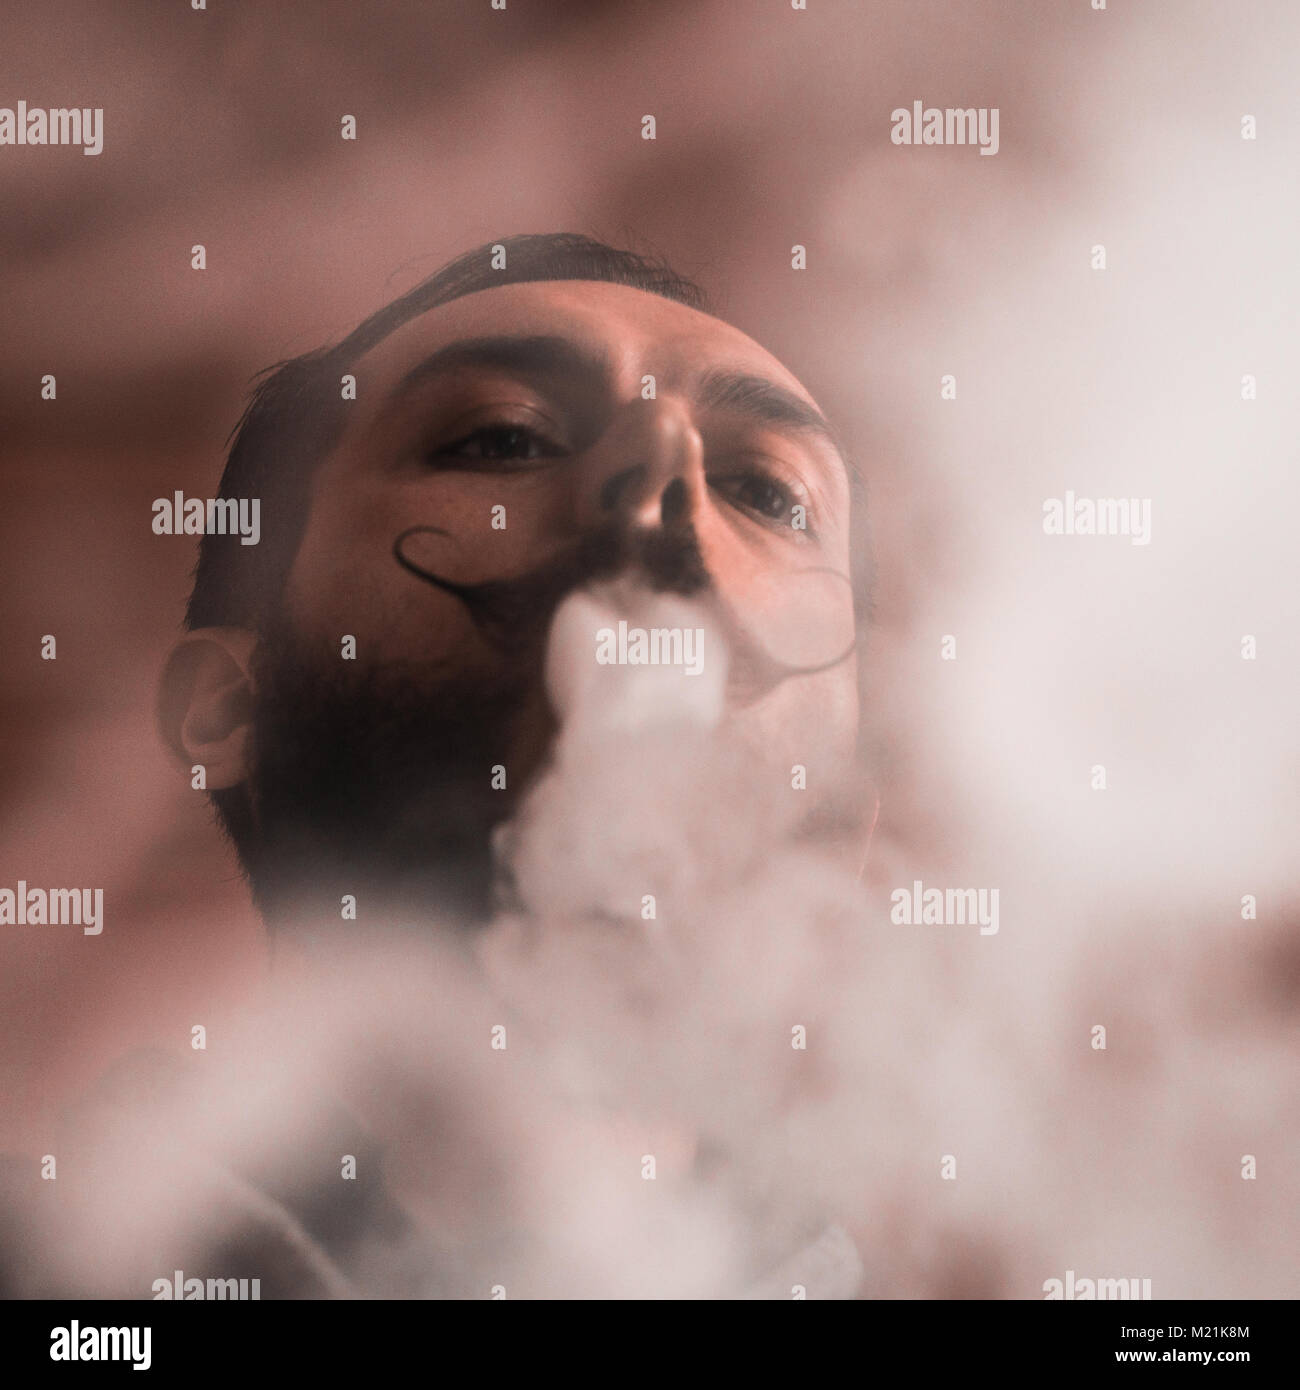 Man with Beard and Mustages Vaping an Electronic Cigarette. Vaper Hipster Smoke Vaporizer and Exhals Smoke Rings. - Stock Image